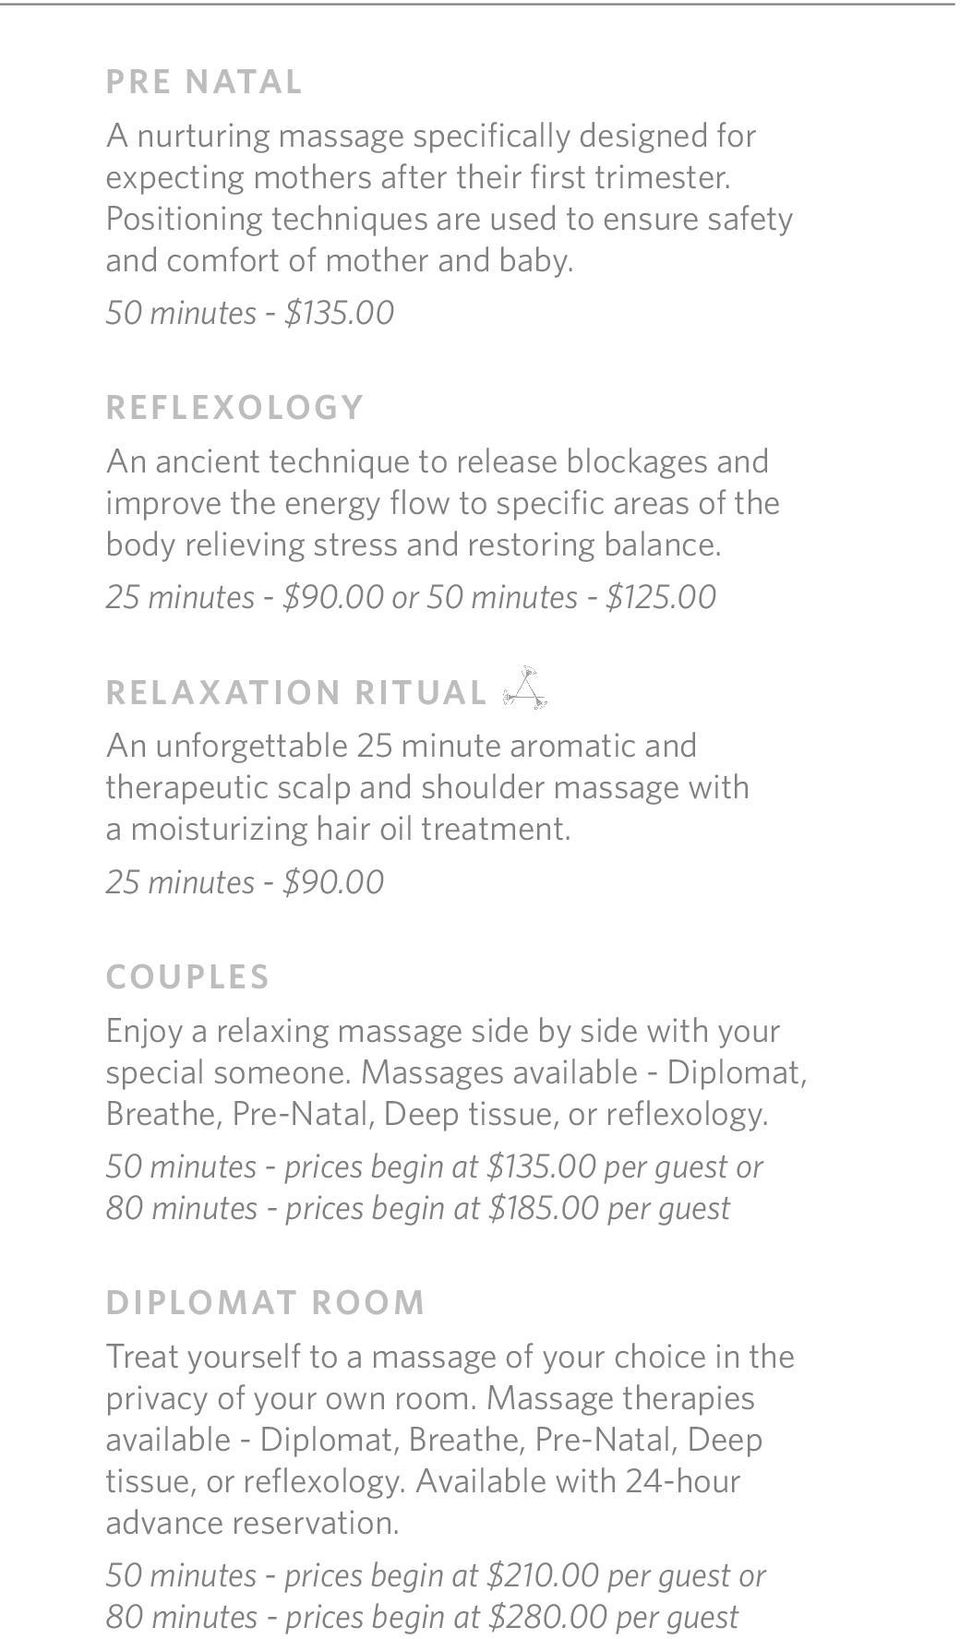 00 RELAXATION RITUAL An unforgettable 25 minute aromatic and therapeutic scalp and shoulder massage with a moisturizing hair oil treatment. 25 minutes - $90.